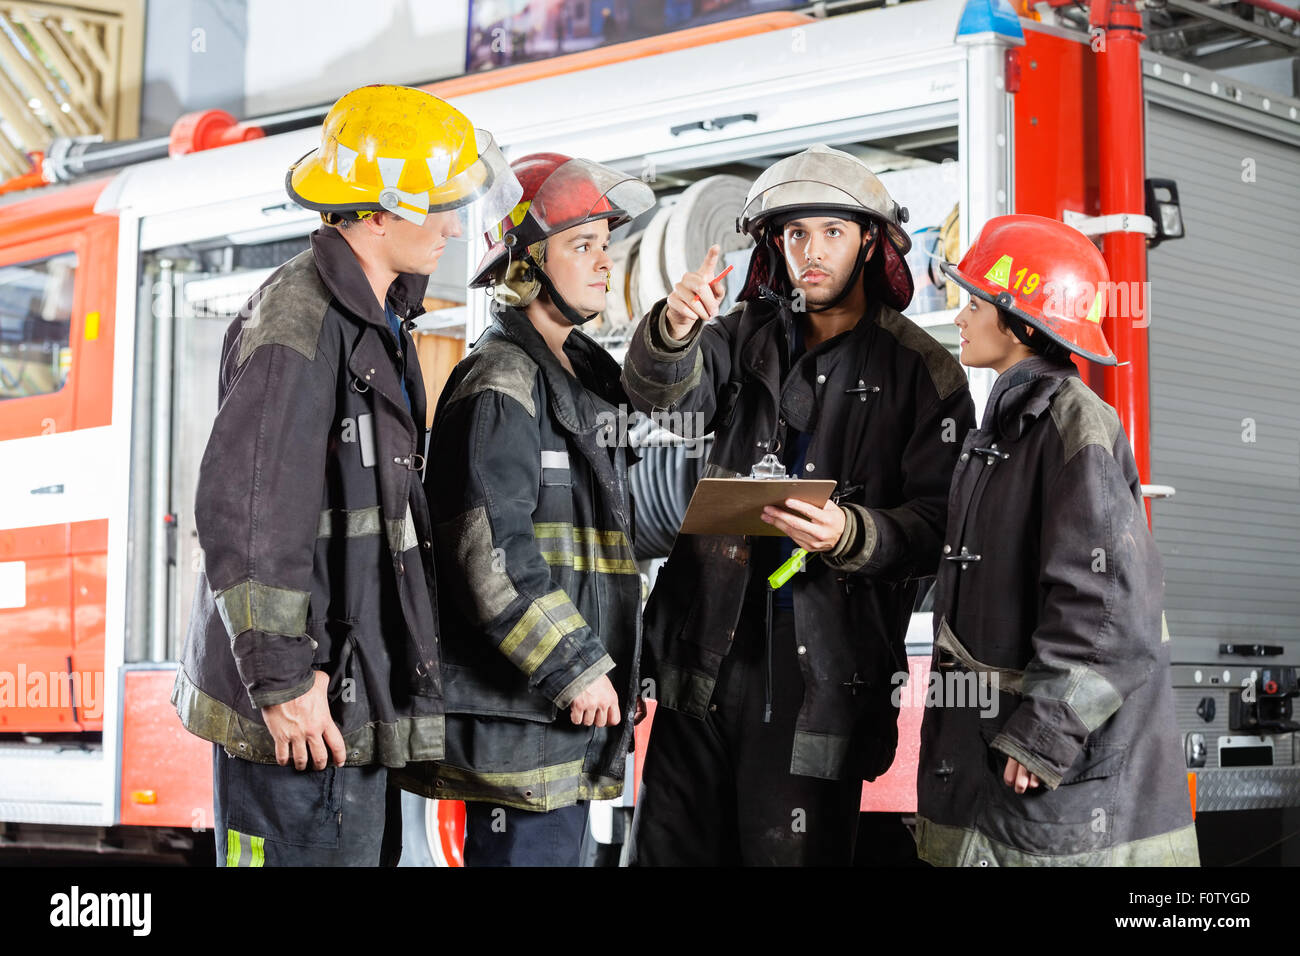 Firefighter Showing Something To Colleagues At Fire Station - Stock Image